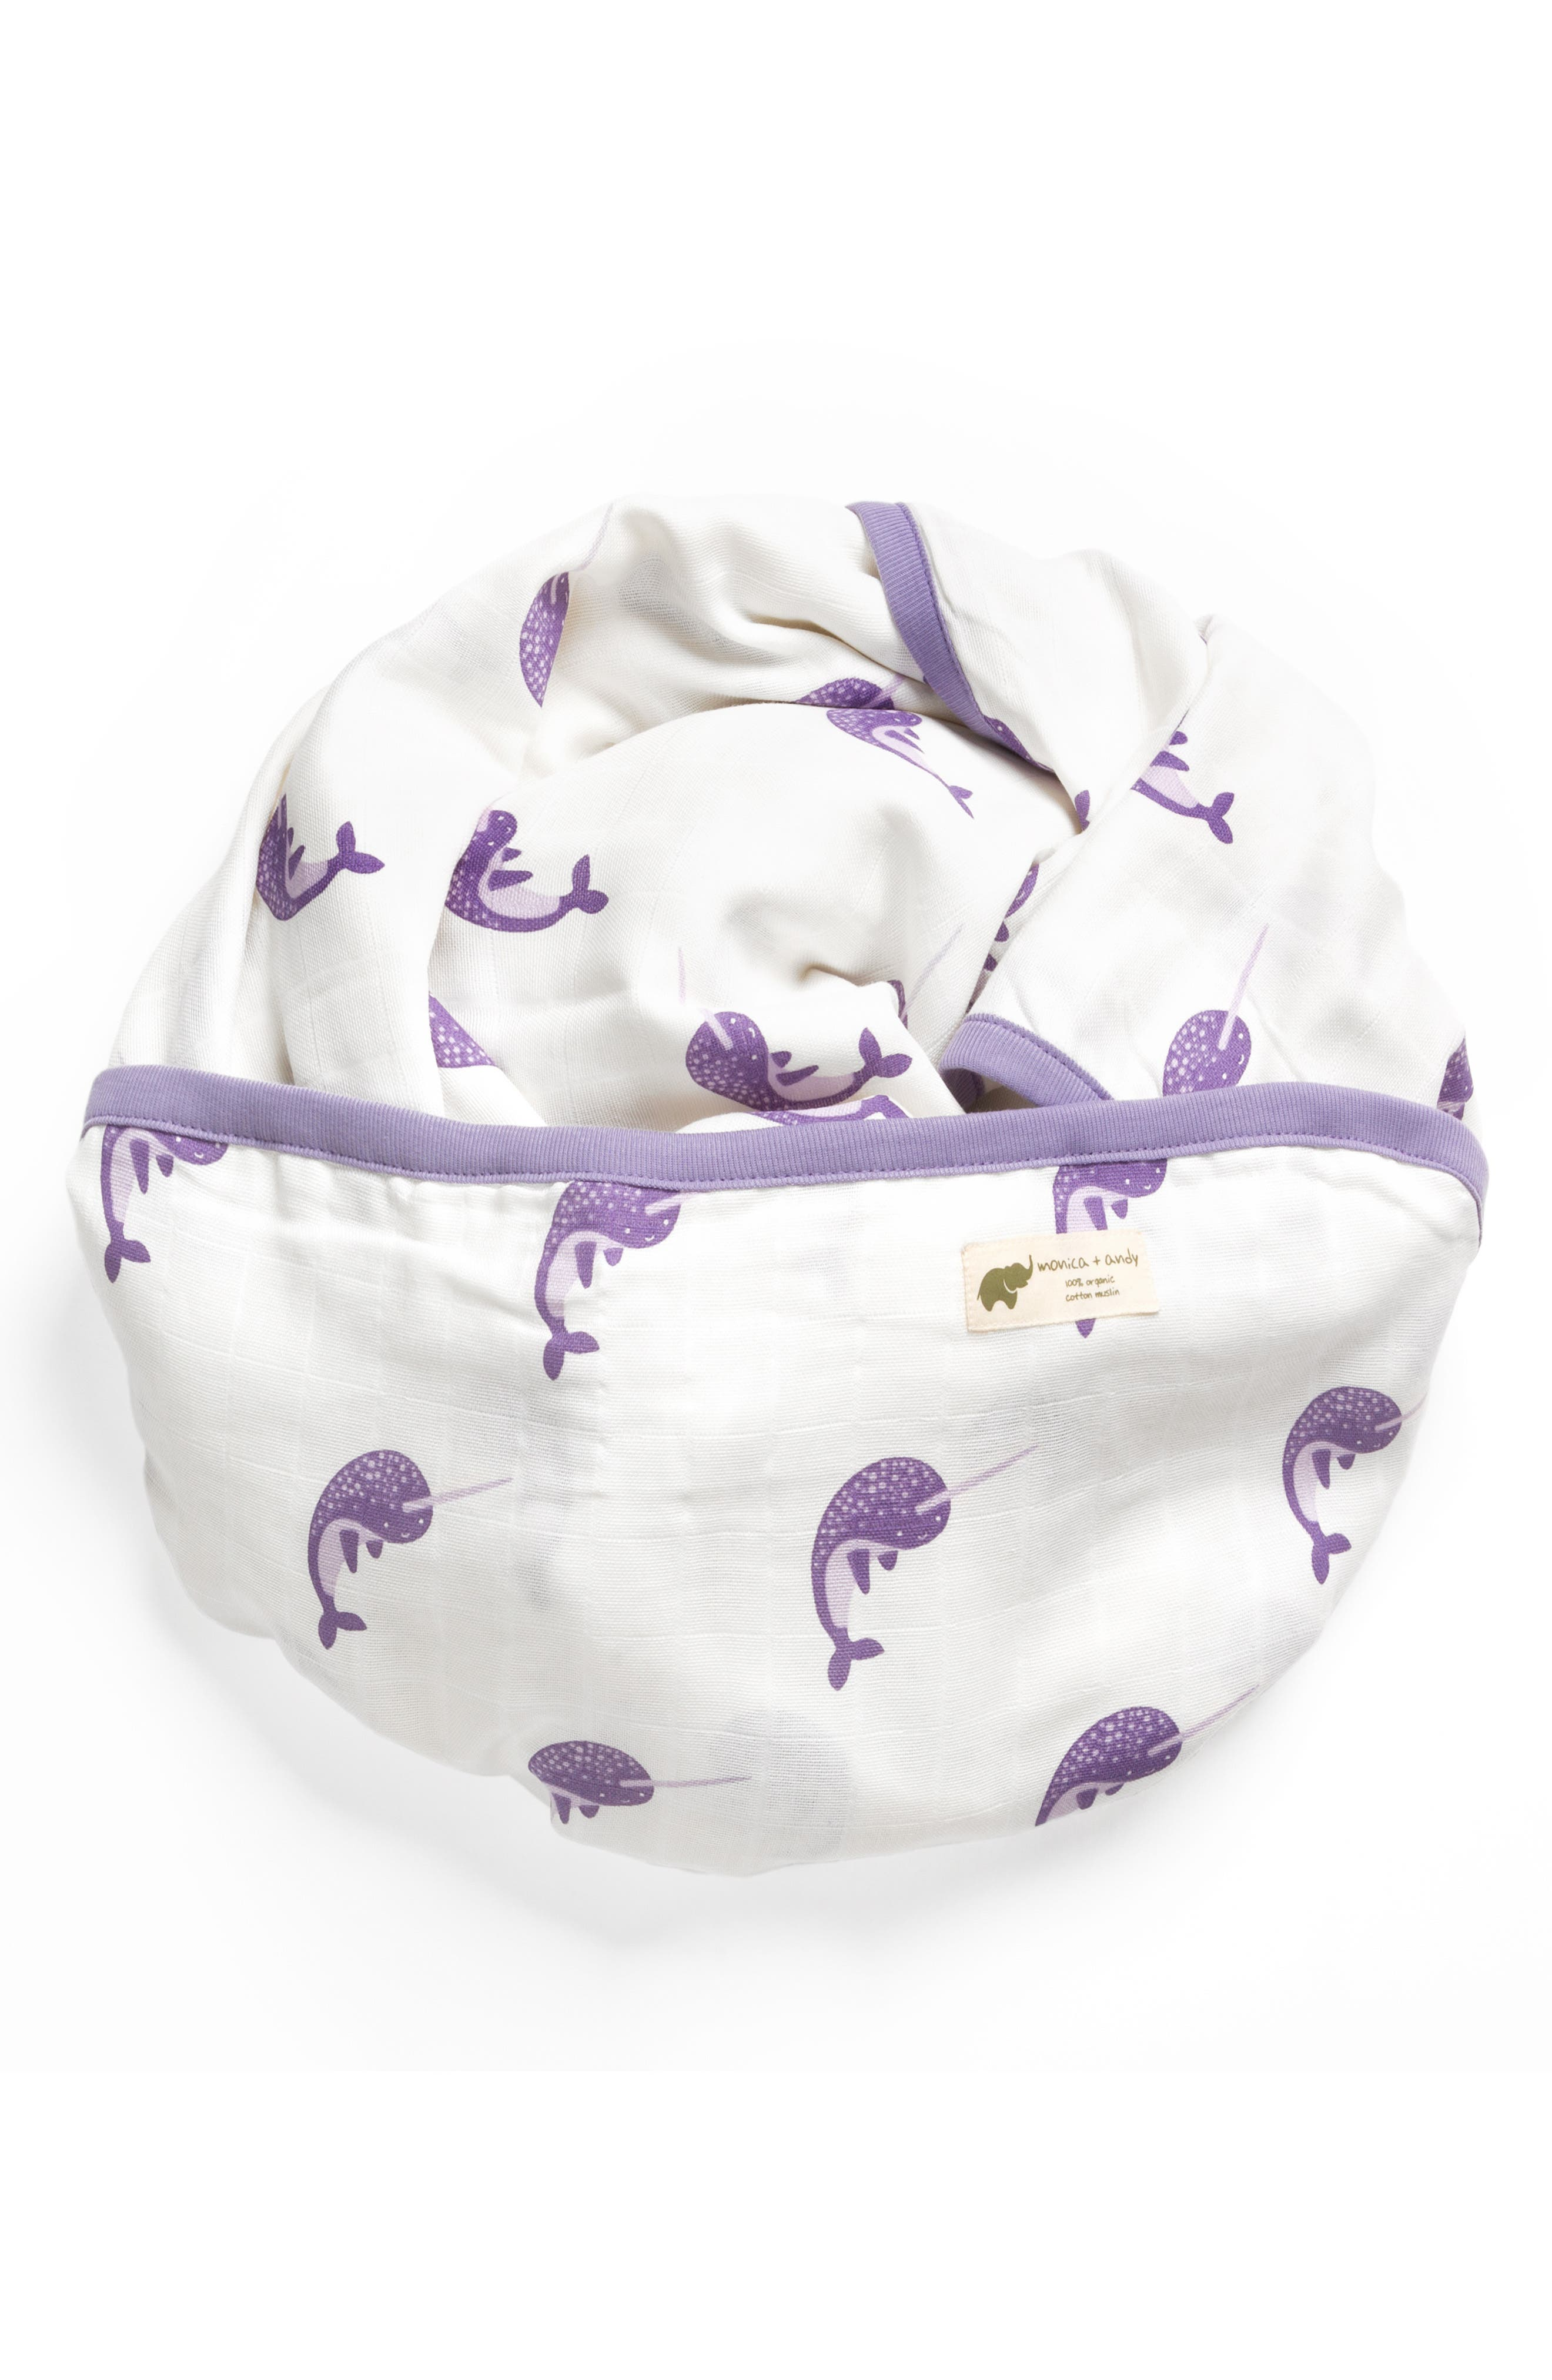 Hello Narwhal Organic Cotton Always Blanket,                             Main thumbnail 1, color,                             HELLO NARWHAL